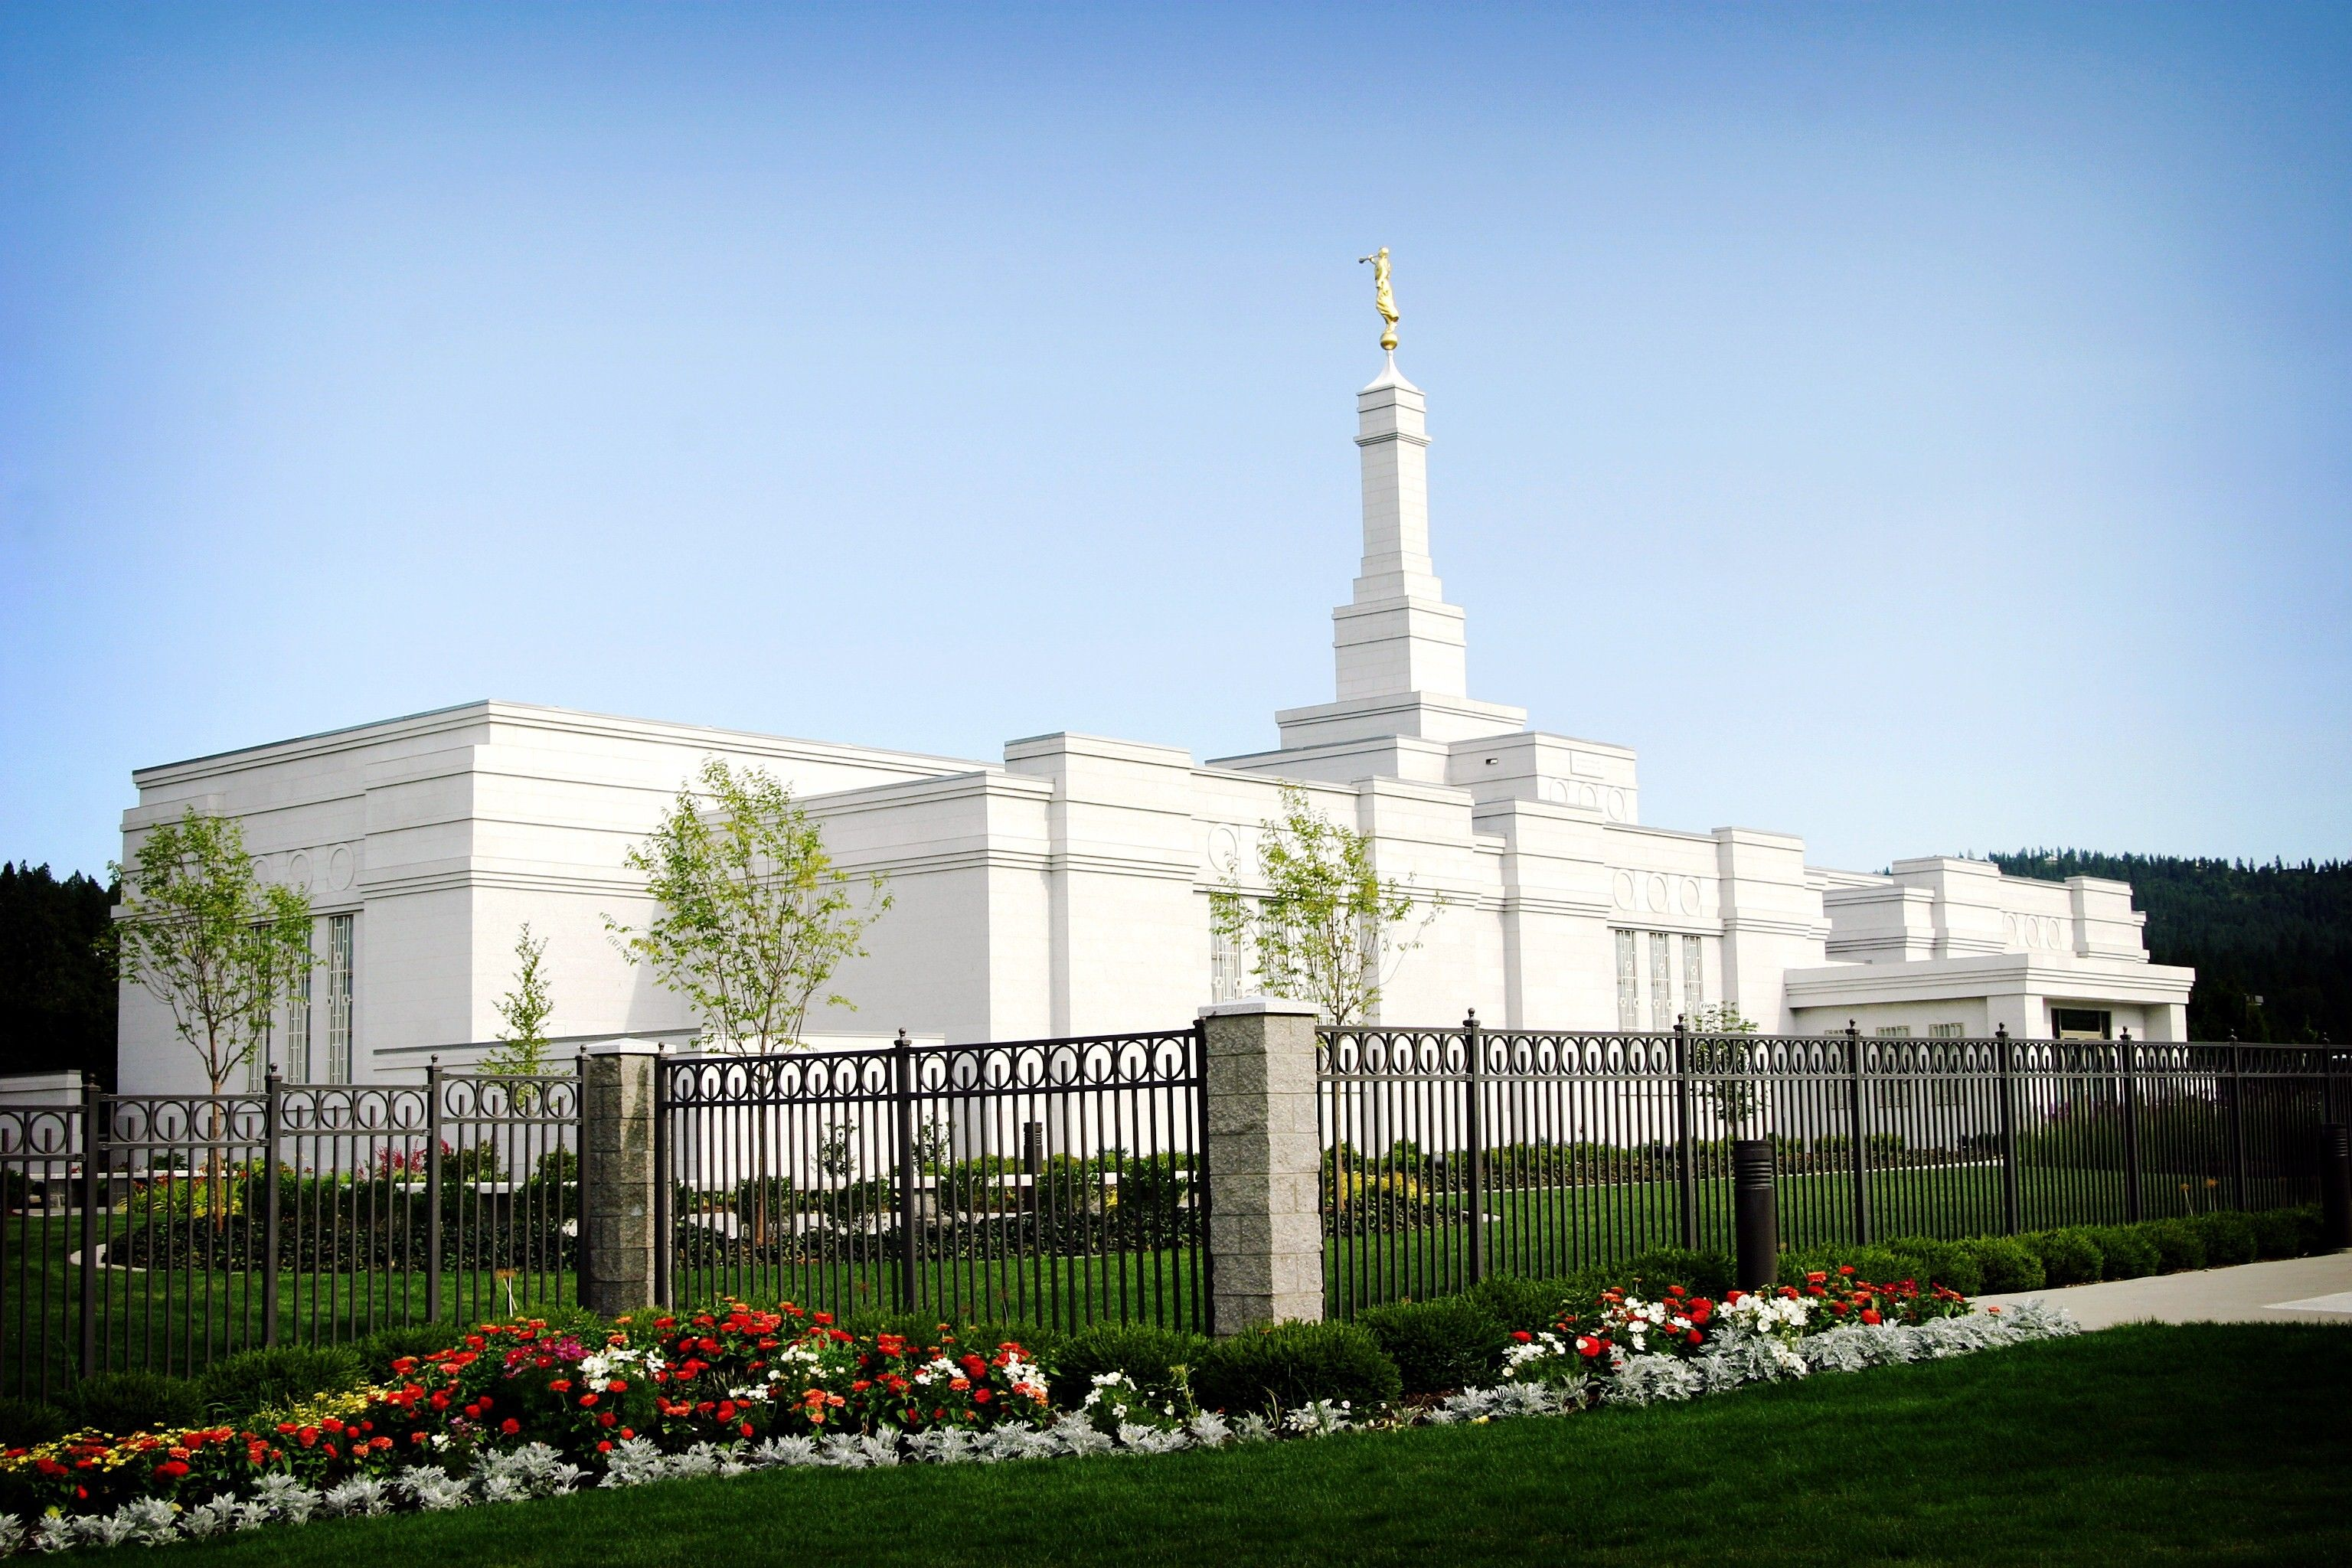 The Spokane Washington Temple, including the entrance and scenery.